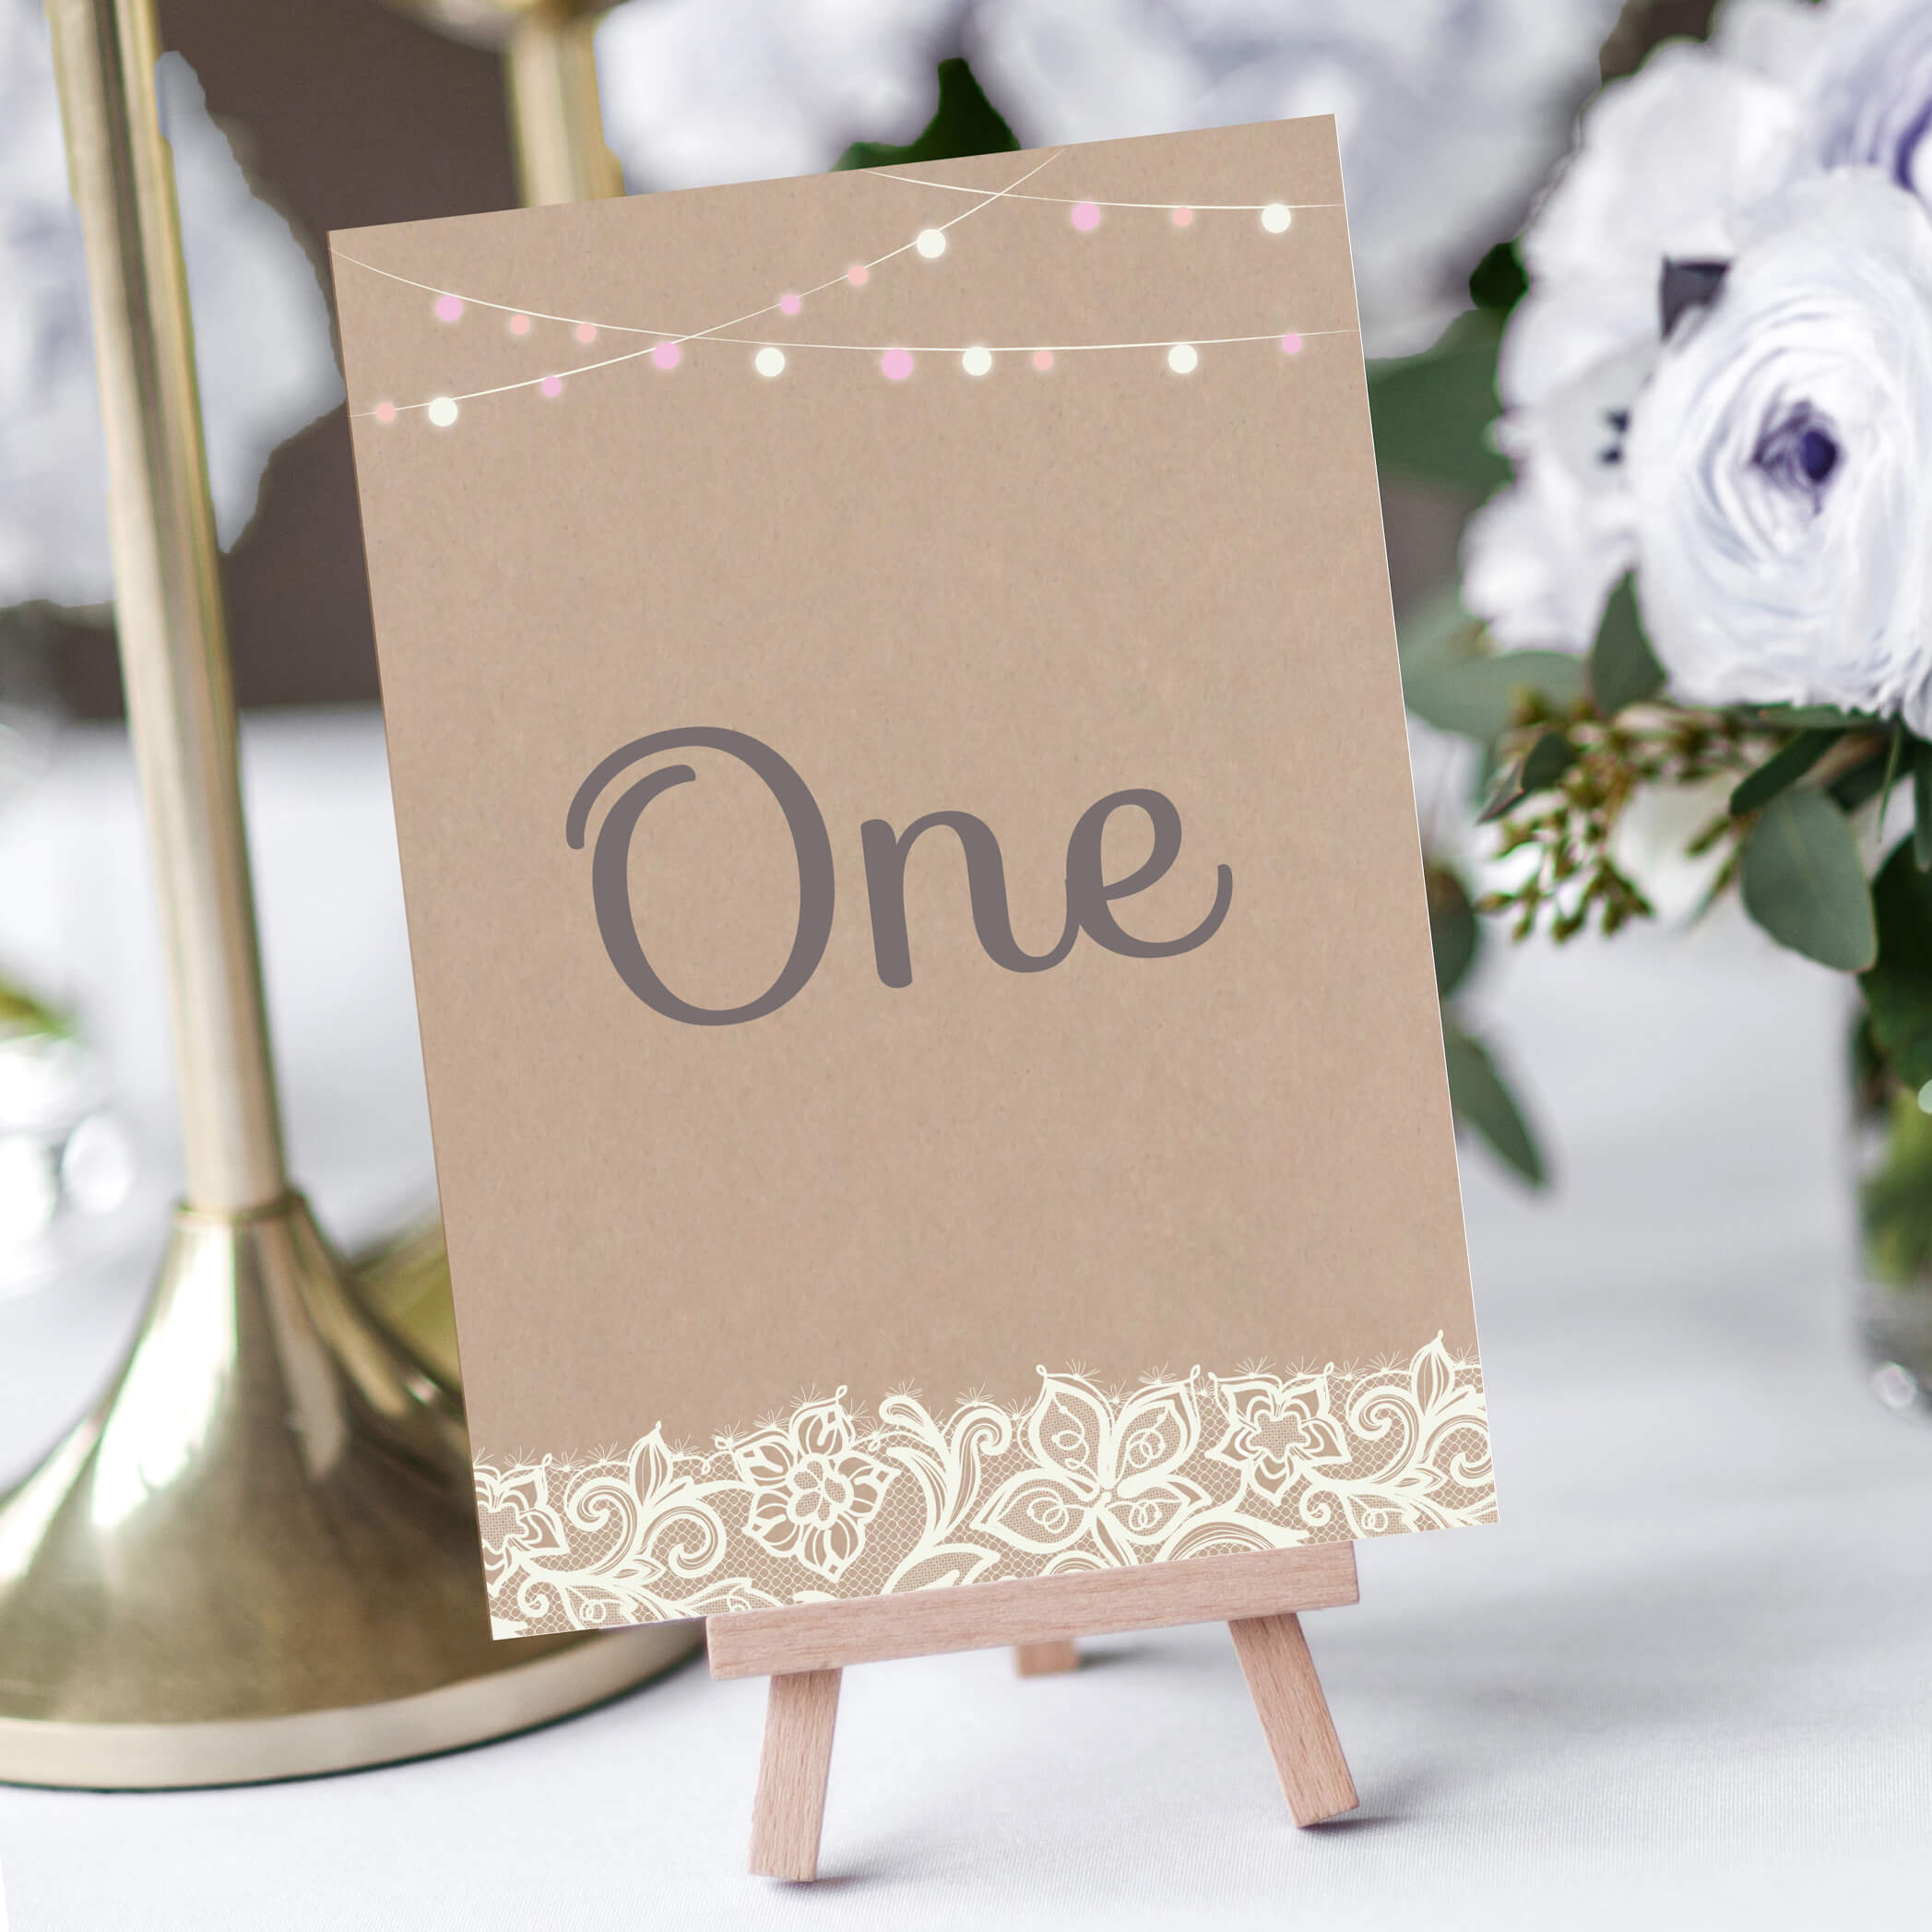 Festooned Lace Table Numbers Designed by Rodo Creative in Manchester